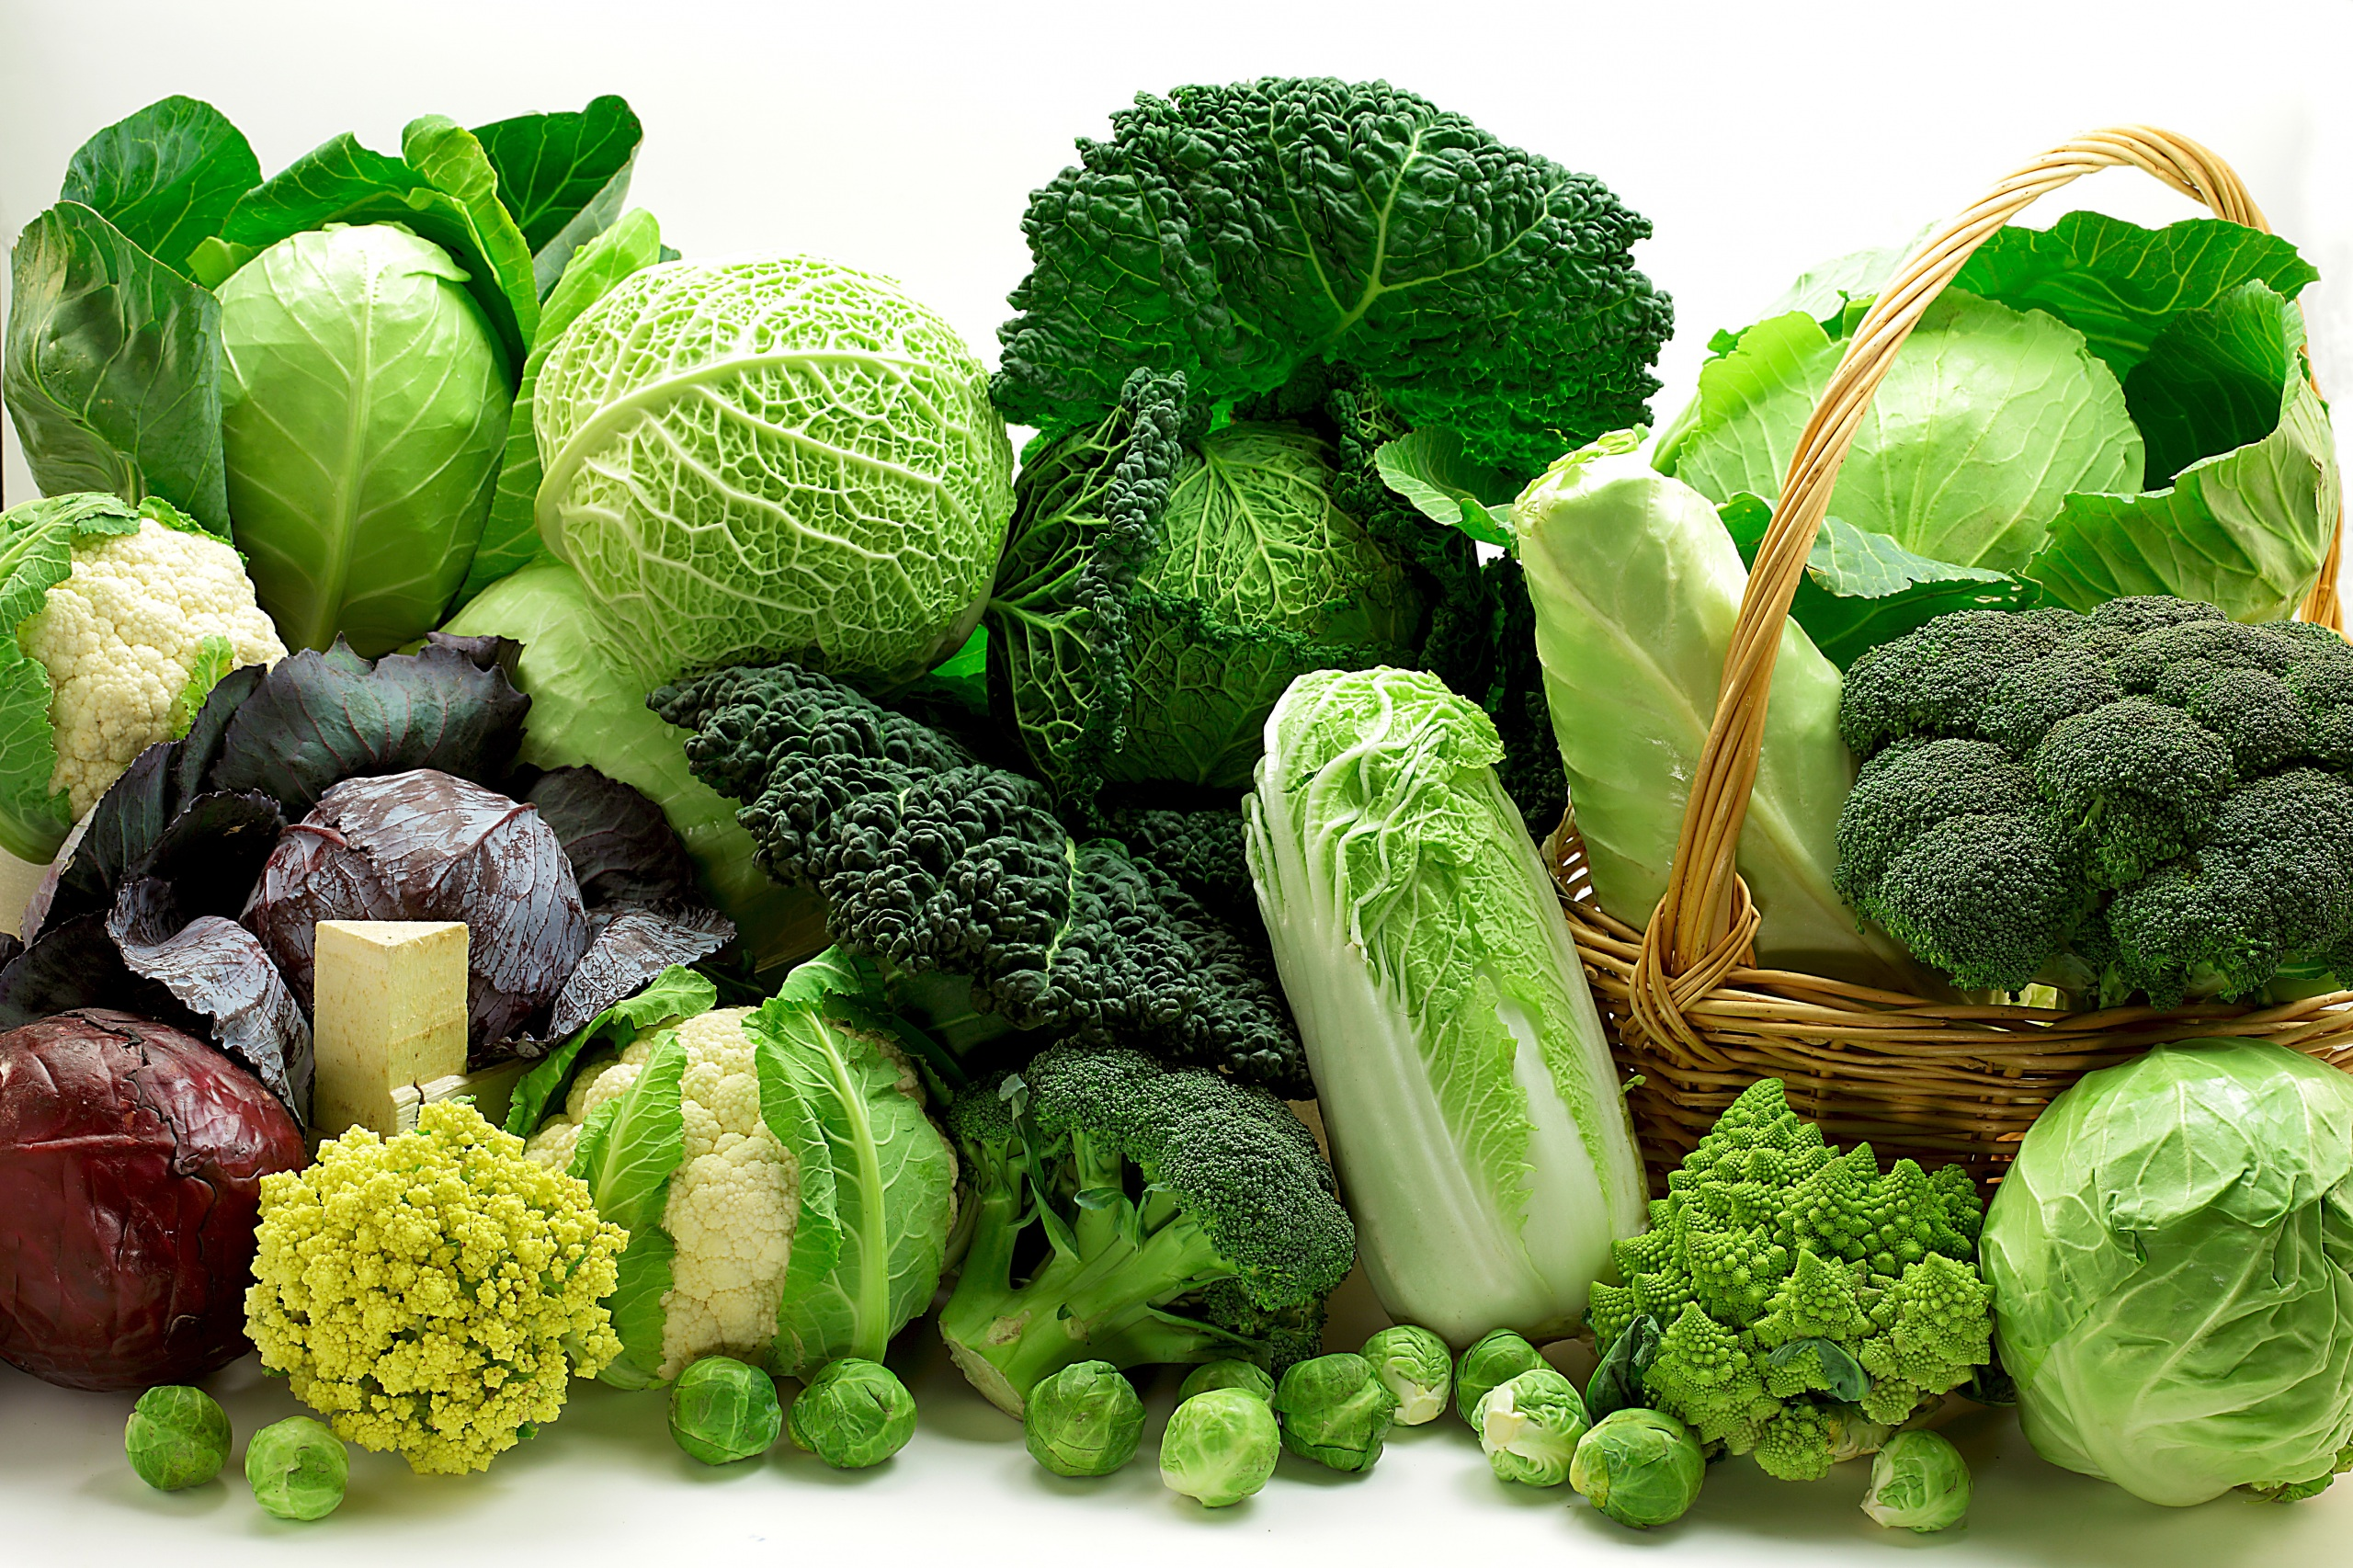 Vegetables_Cabbage_Many_422713